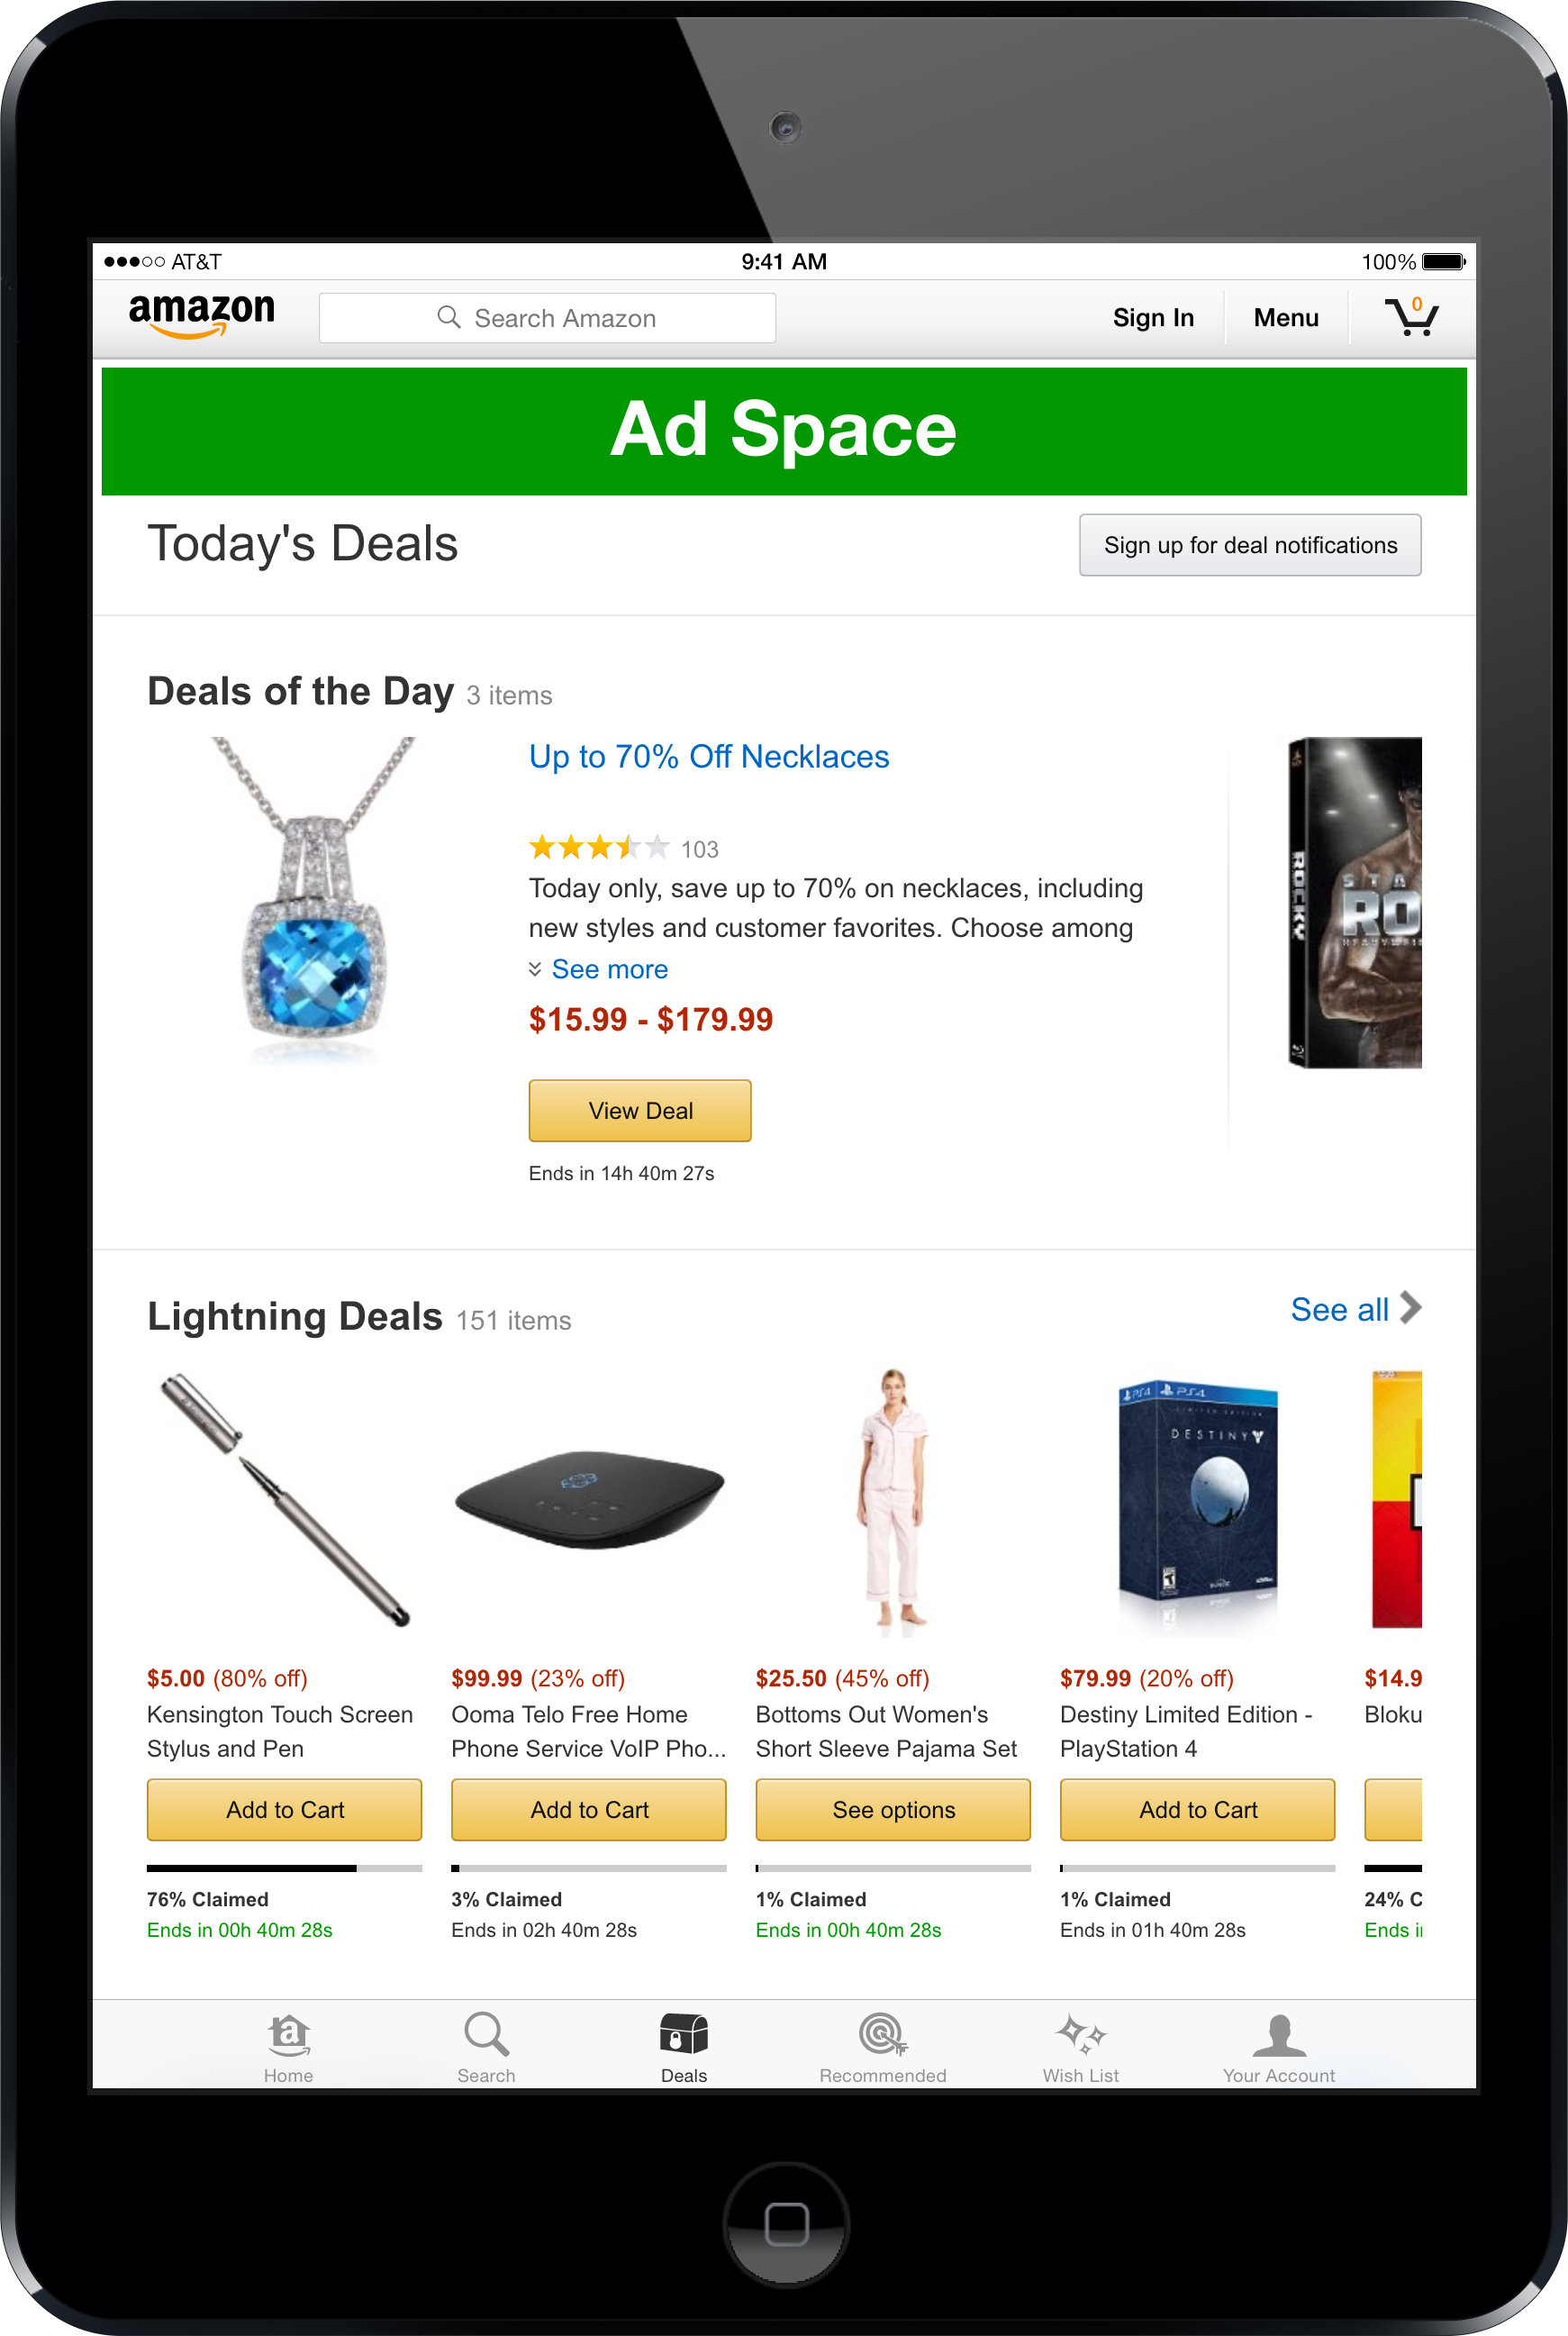 iPad Shopping App Deals Page 1940 x 180 px